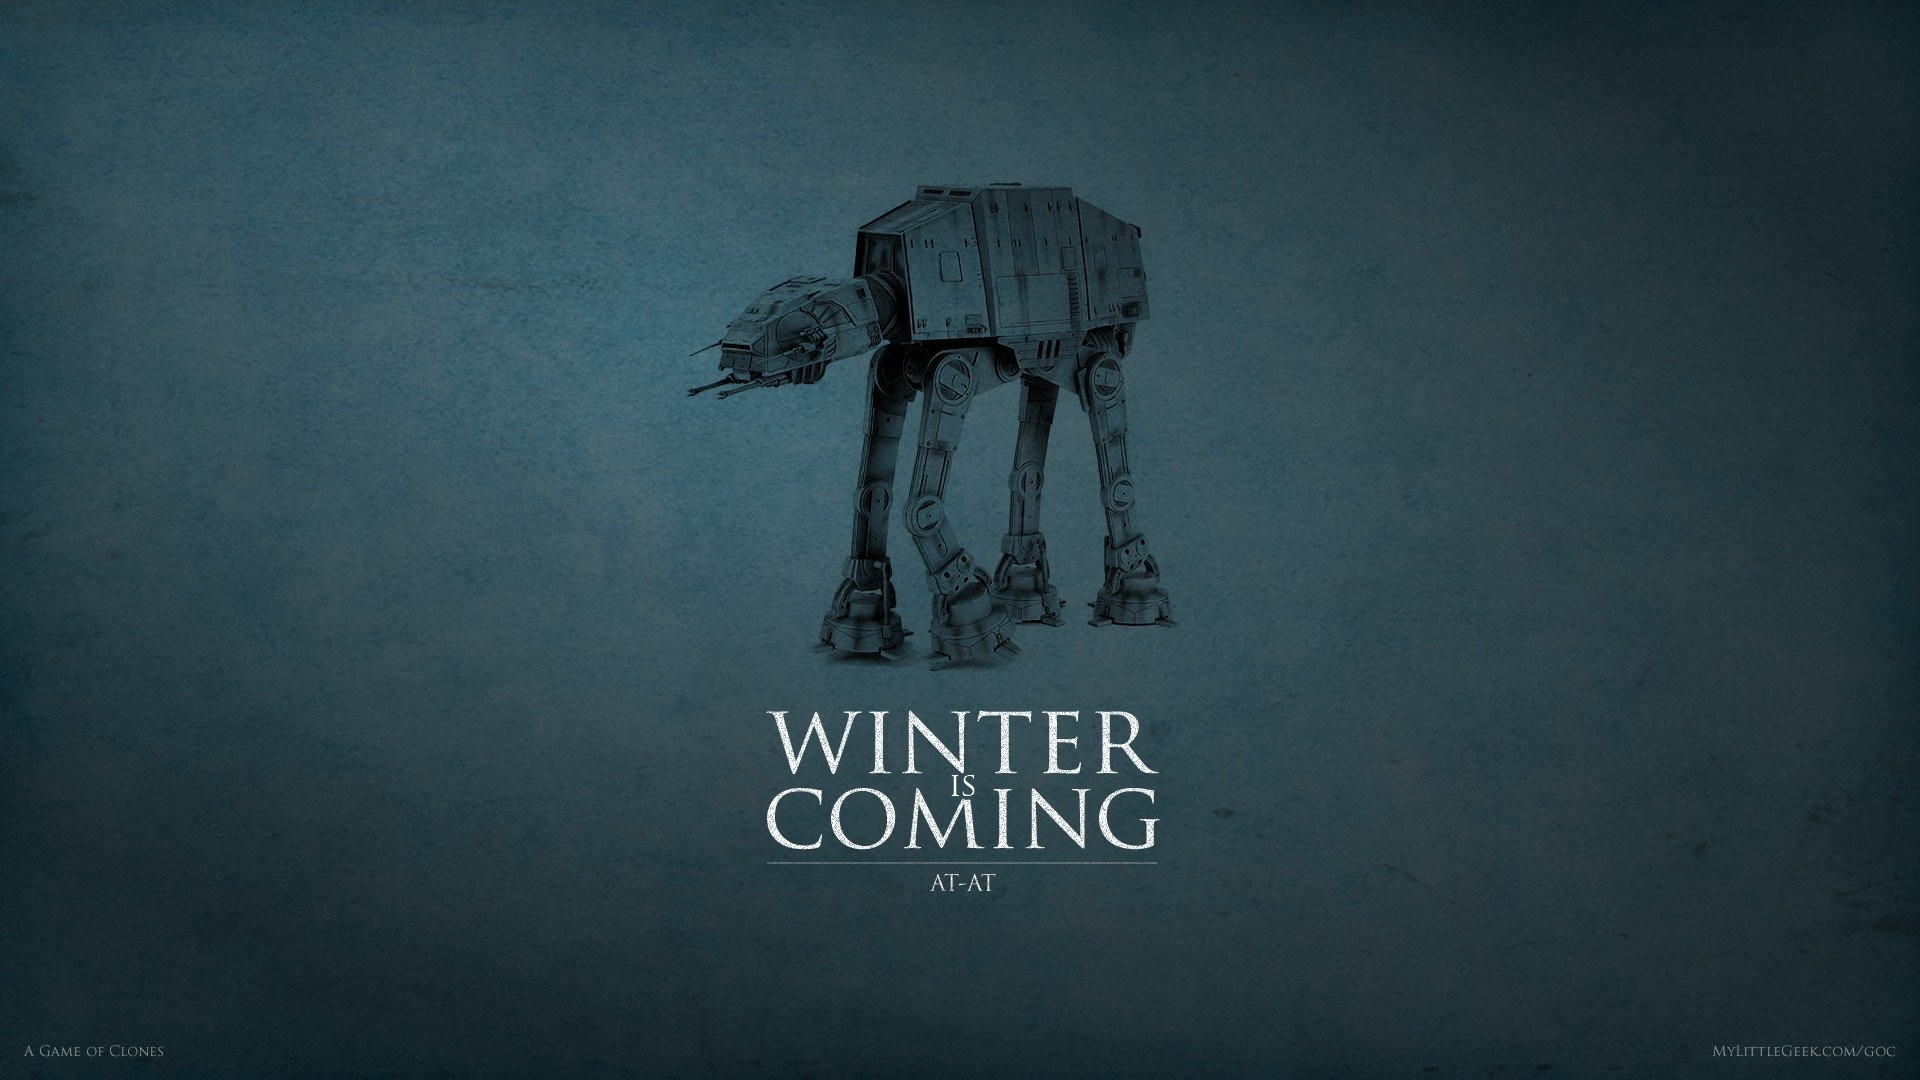 Game Of Thrones House Stark Star Wars AT-AT House Stark Wallpaper …